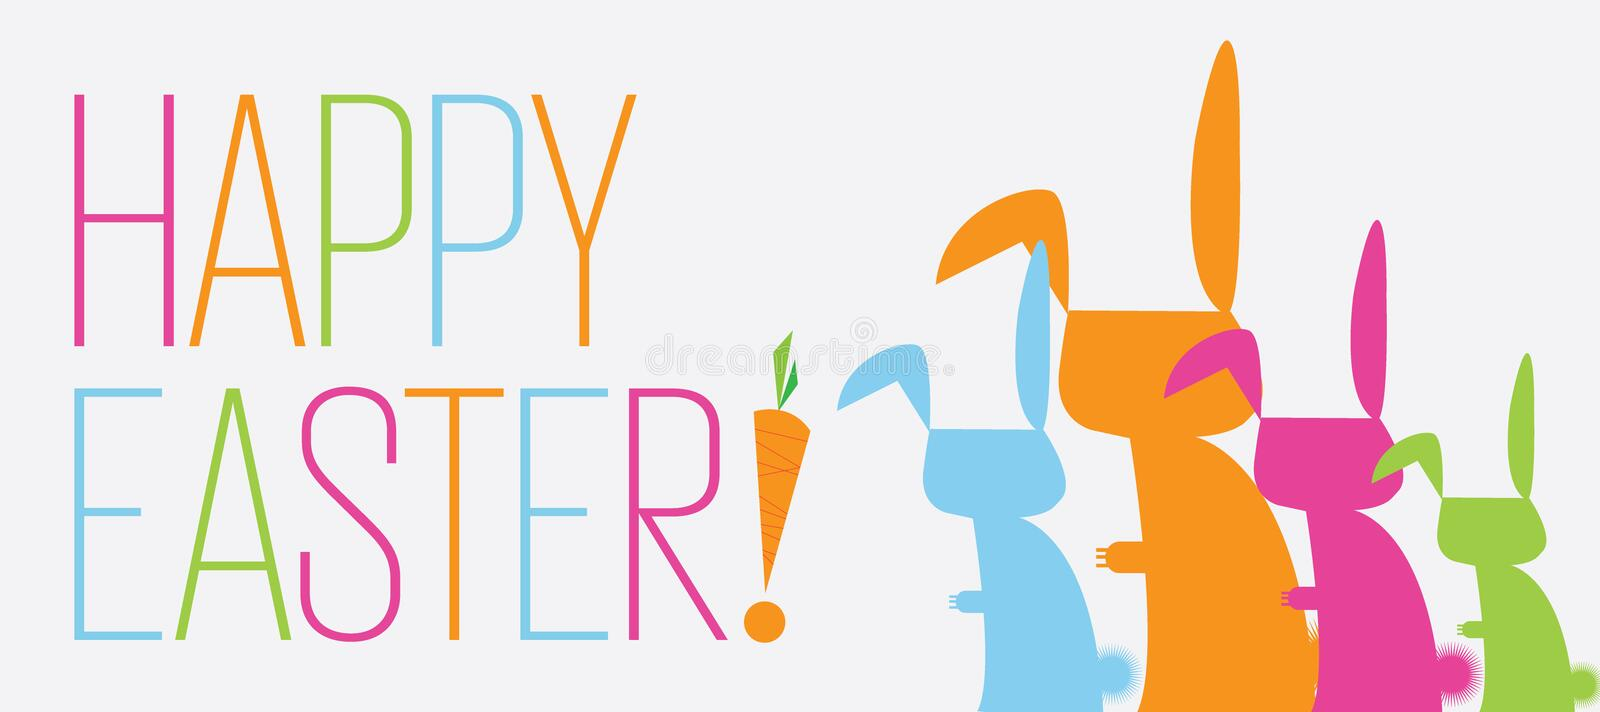 Bunny Happy Easter Banner royalty free illustration